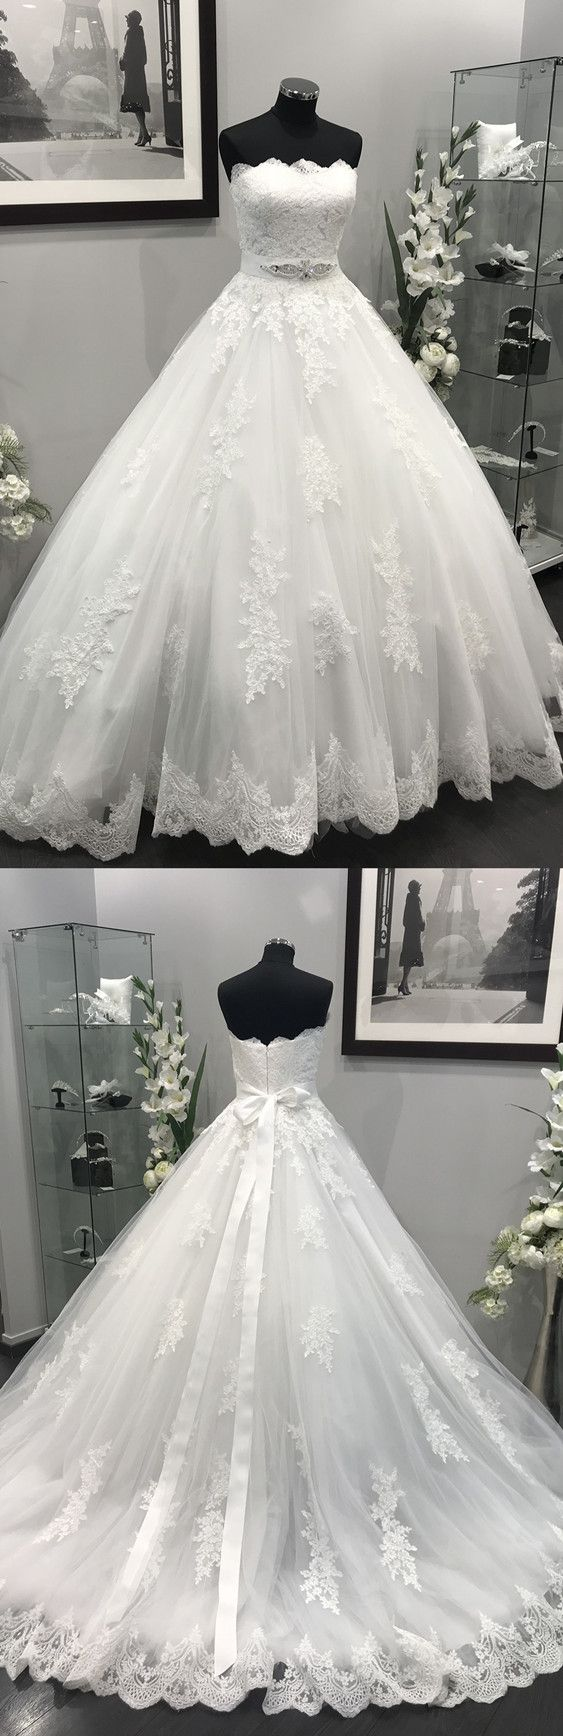 Lace appliques crystal beaded sashes tulle wedding dresses ball